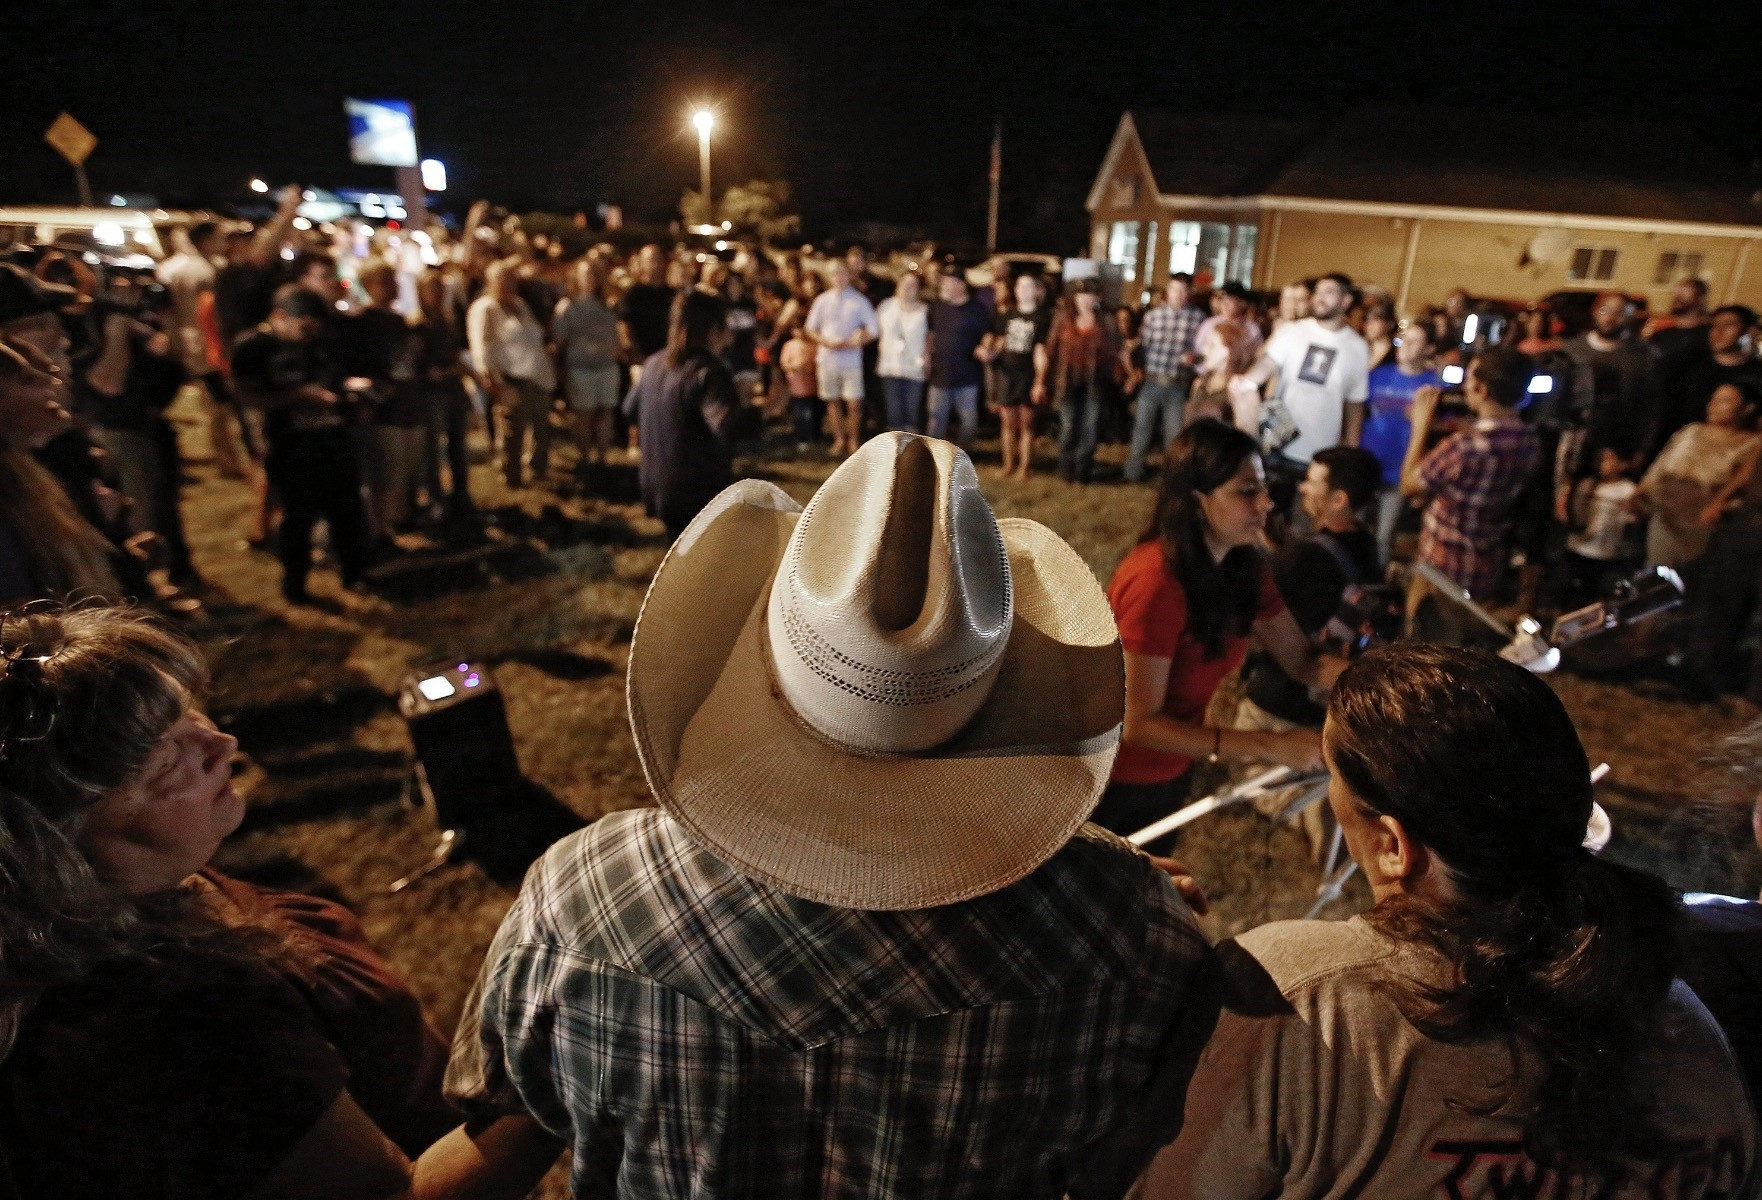 People attend a vigil near where a mass shooting took place at the First Baptist Church, which killed 26 and wounded some 20 others, Sutherland Springs, Texas, Nov. 5.